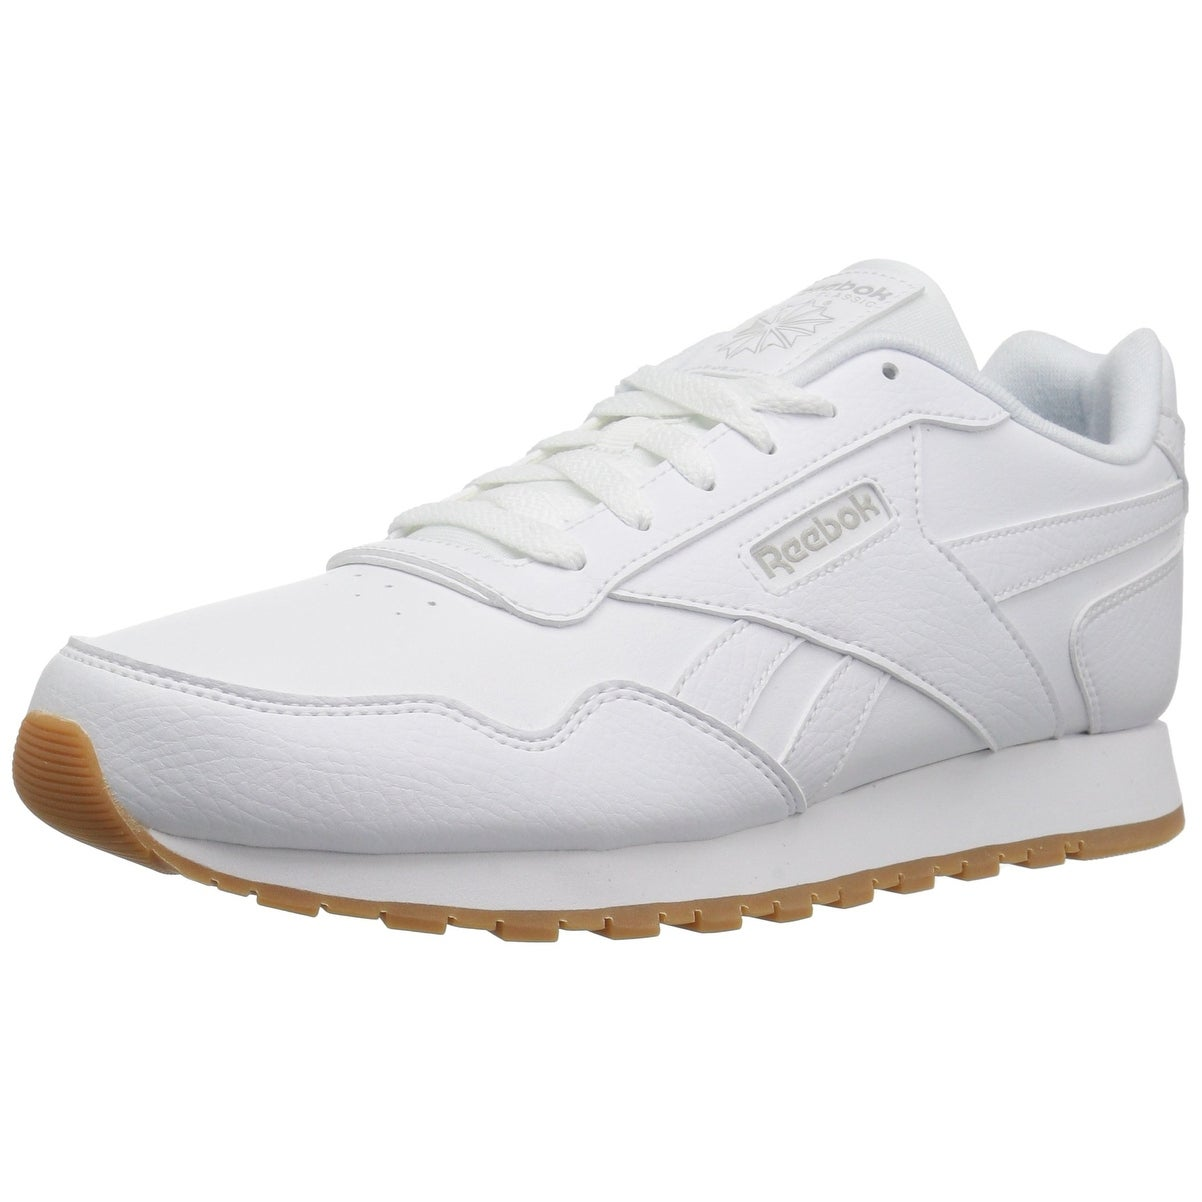 4fc80c4a4aa Buy Reebok Men s Athletic Shoes Online at Overstock